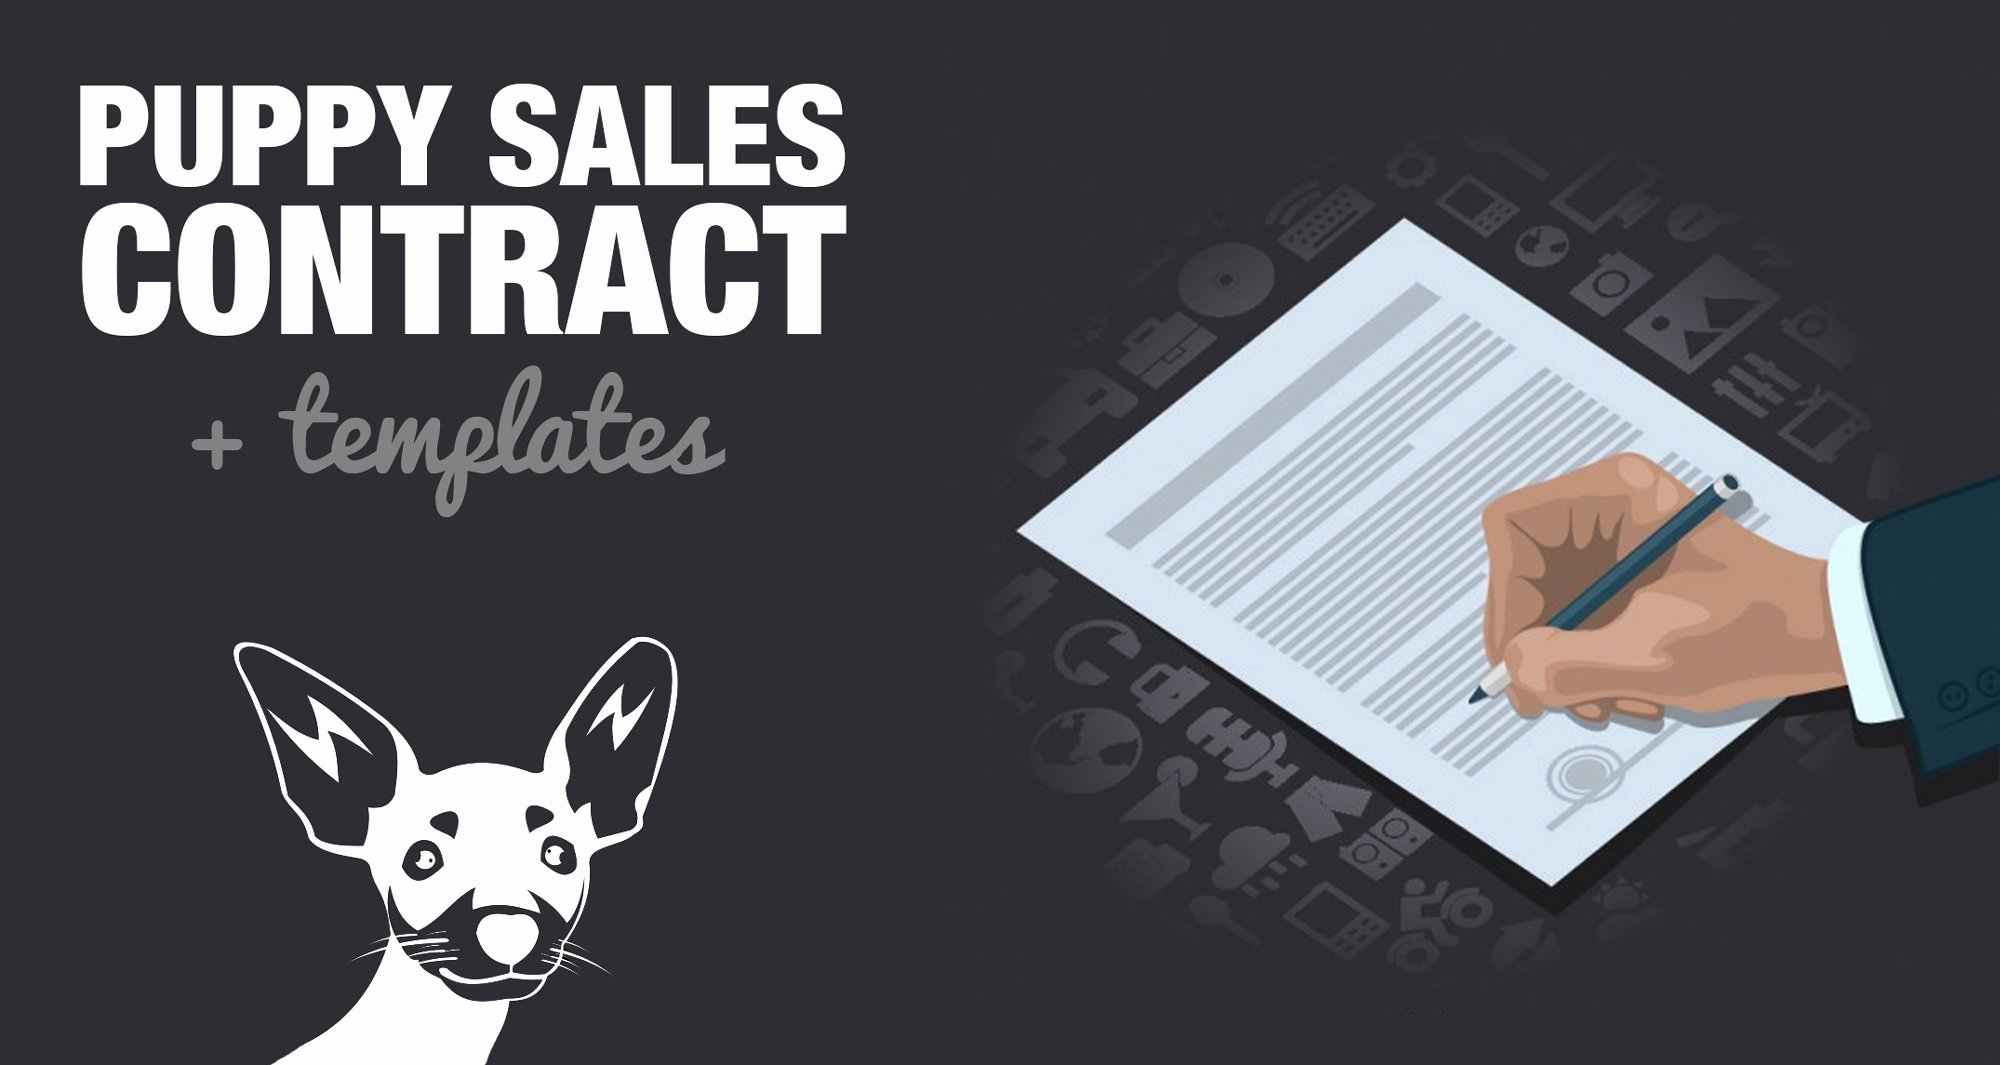 Dog Training Contract Template Elegant Free Puppy Sales Contract Template & Word Doc Sample